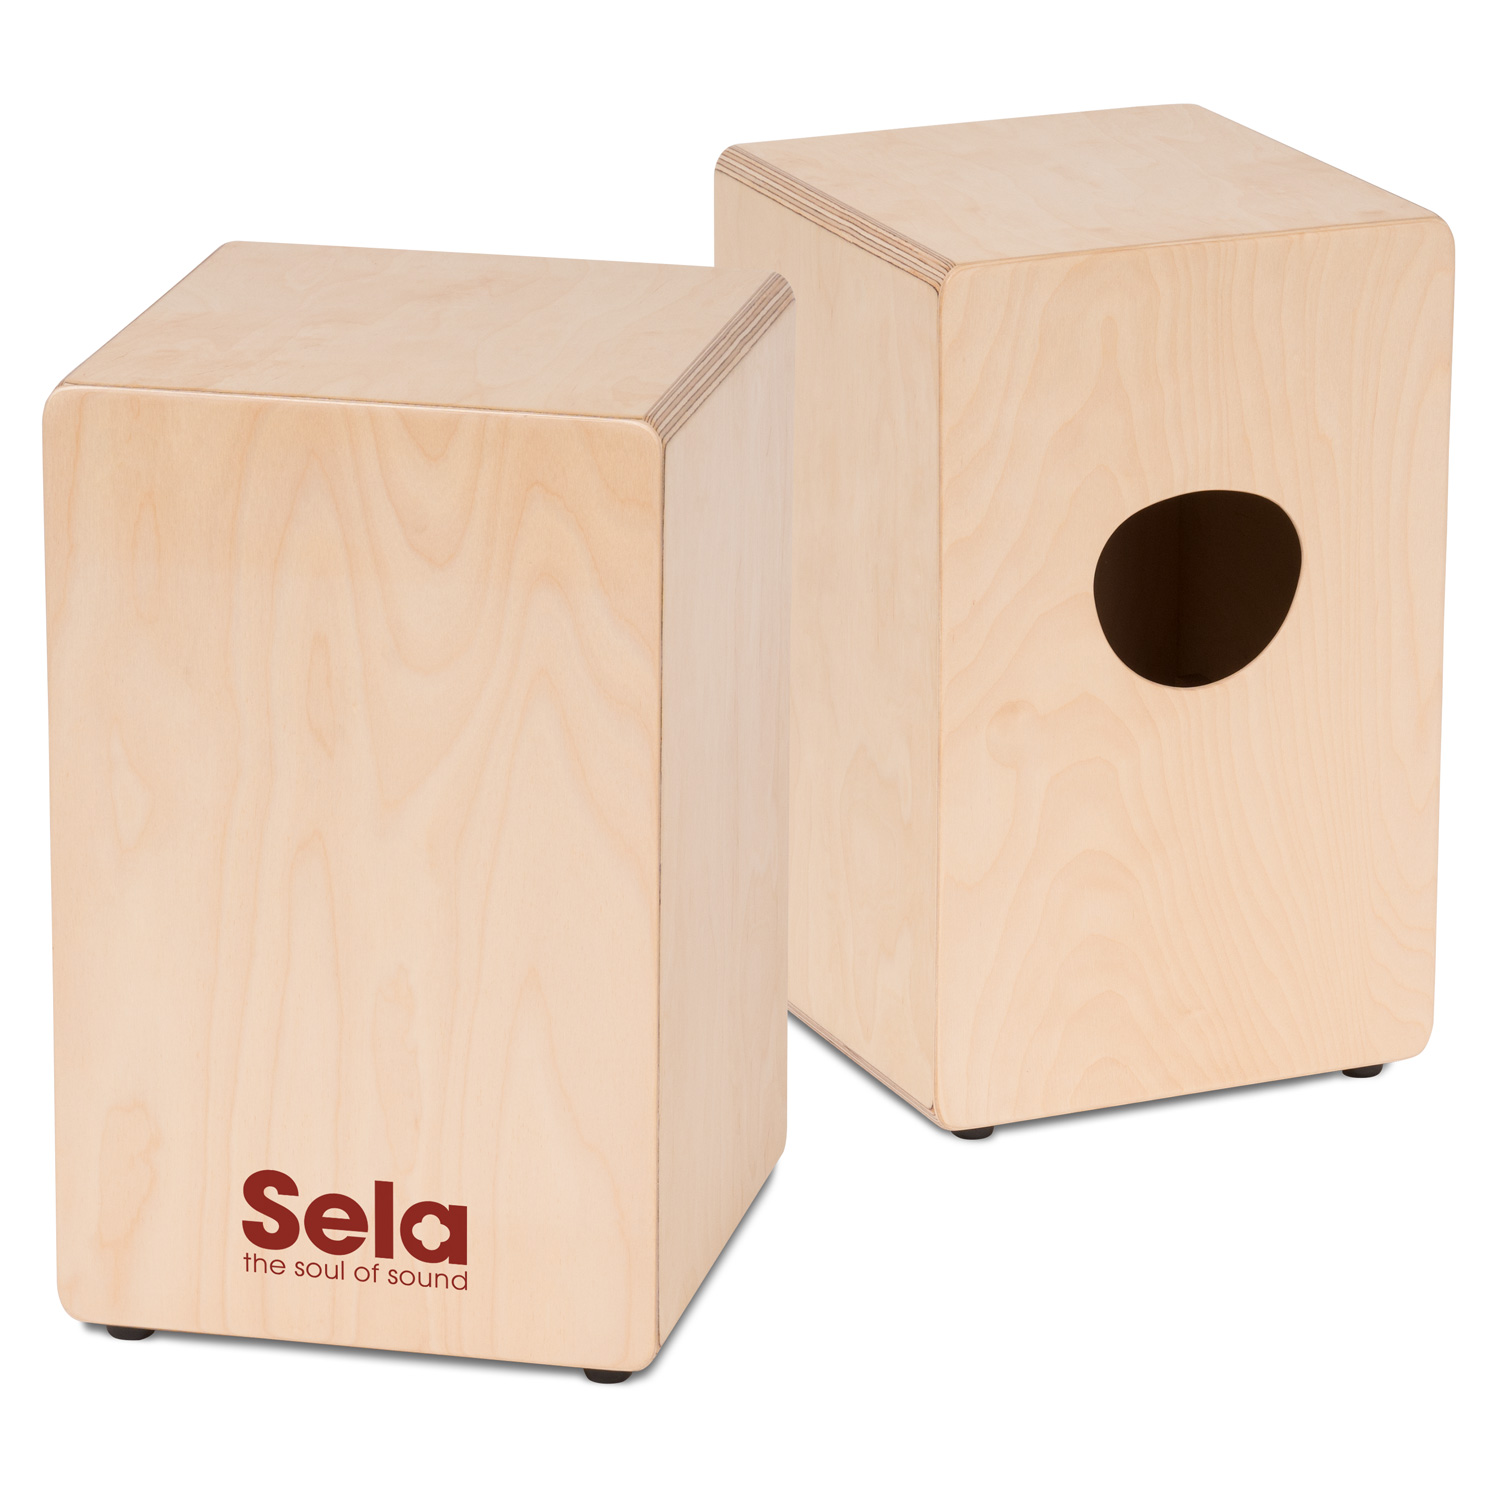 Sela Primera Product photos 1